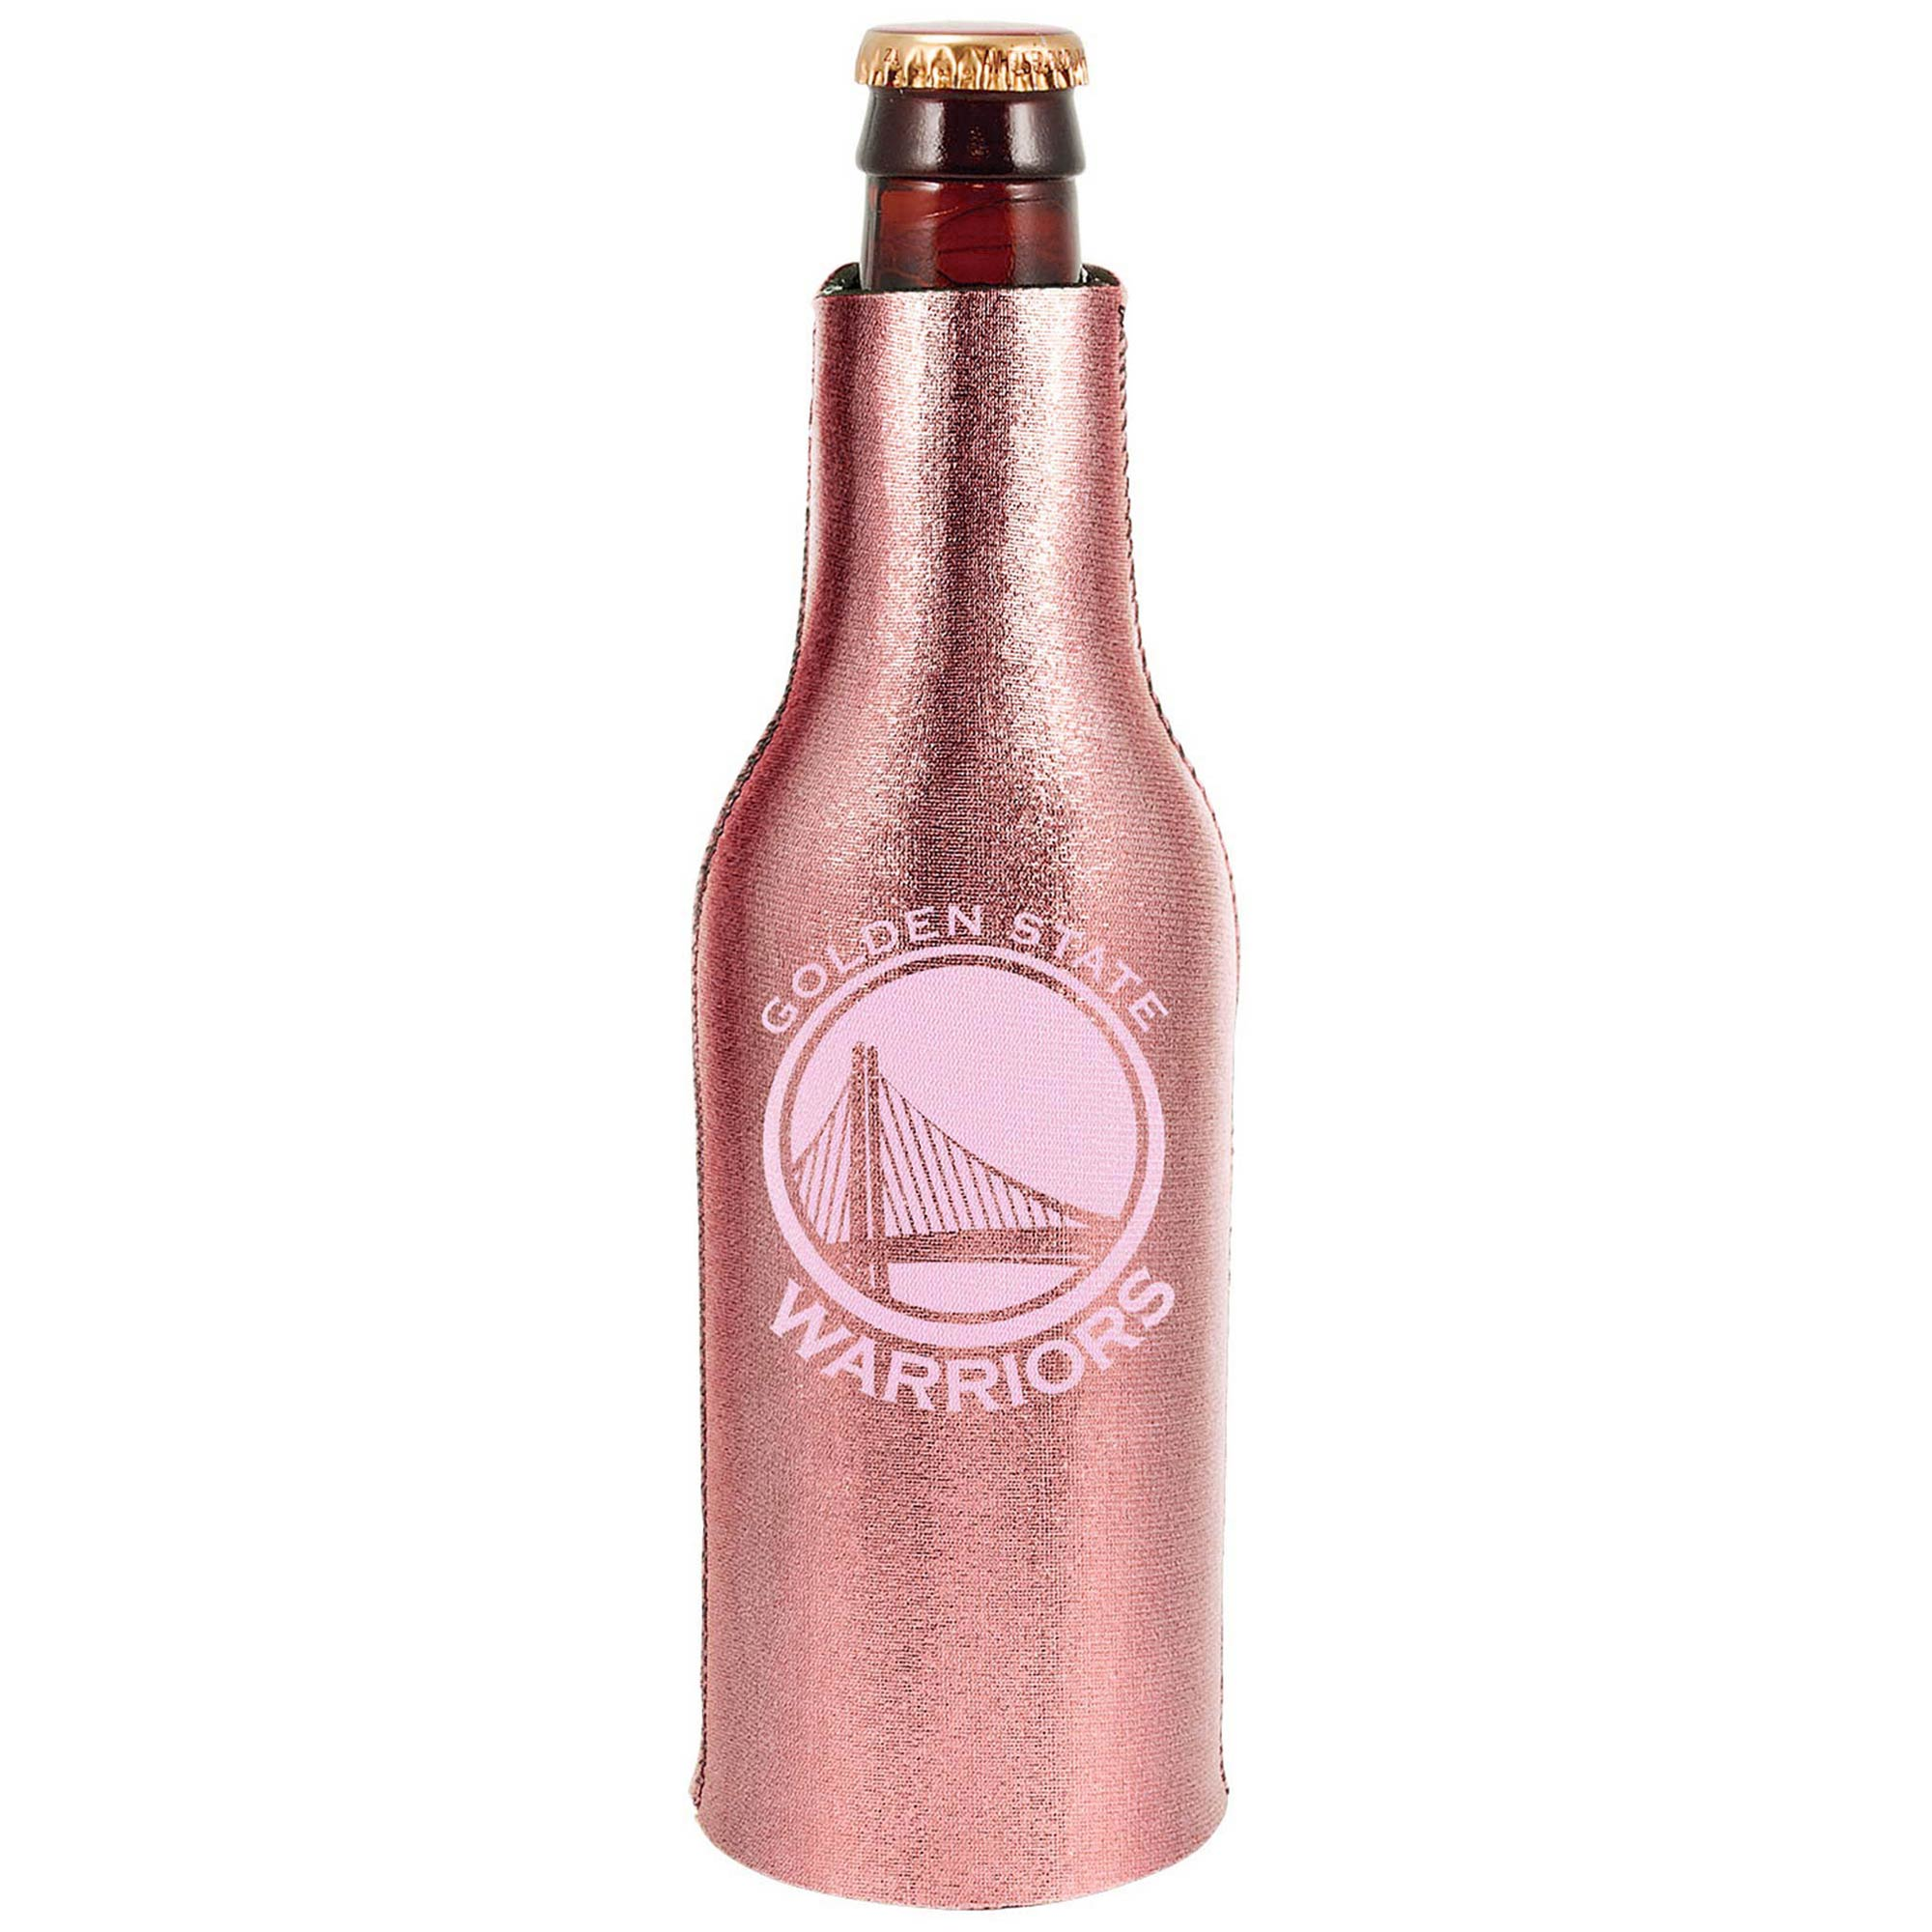 Golden State Warriors 12oz. Rose Gold Bottle Cooler